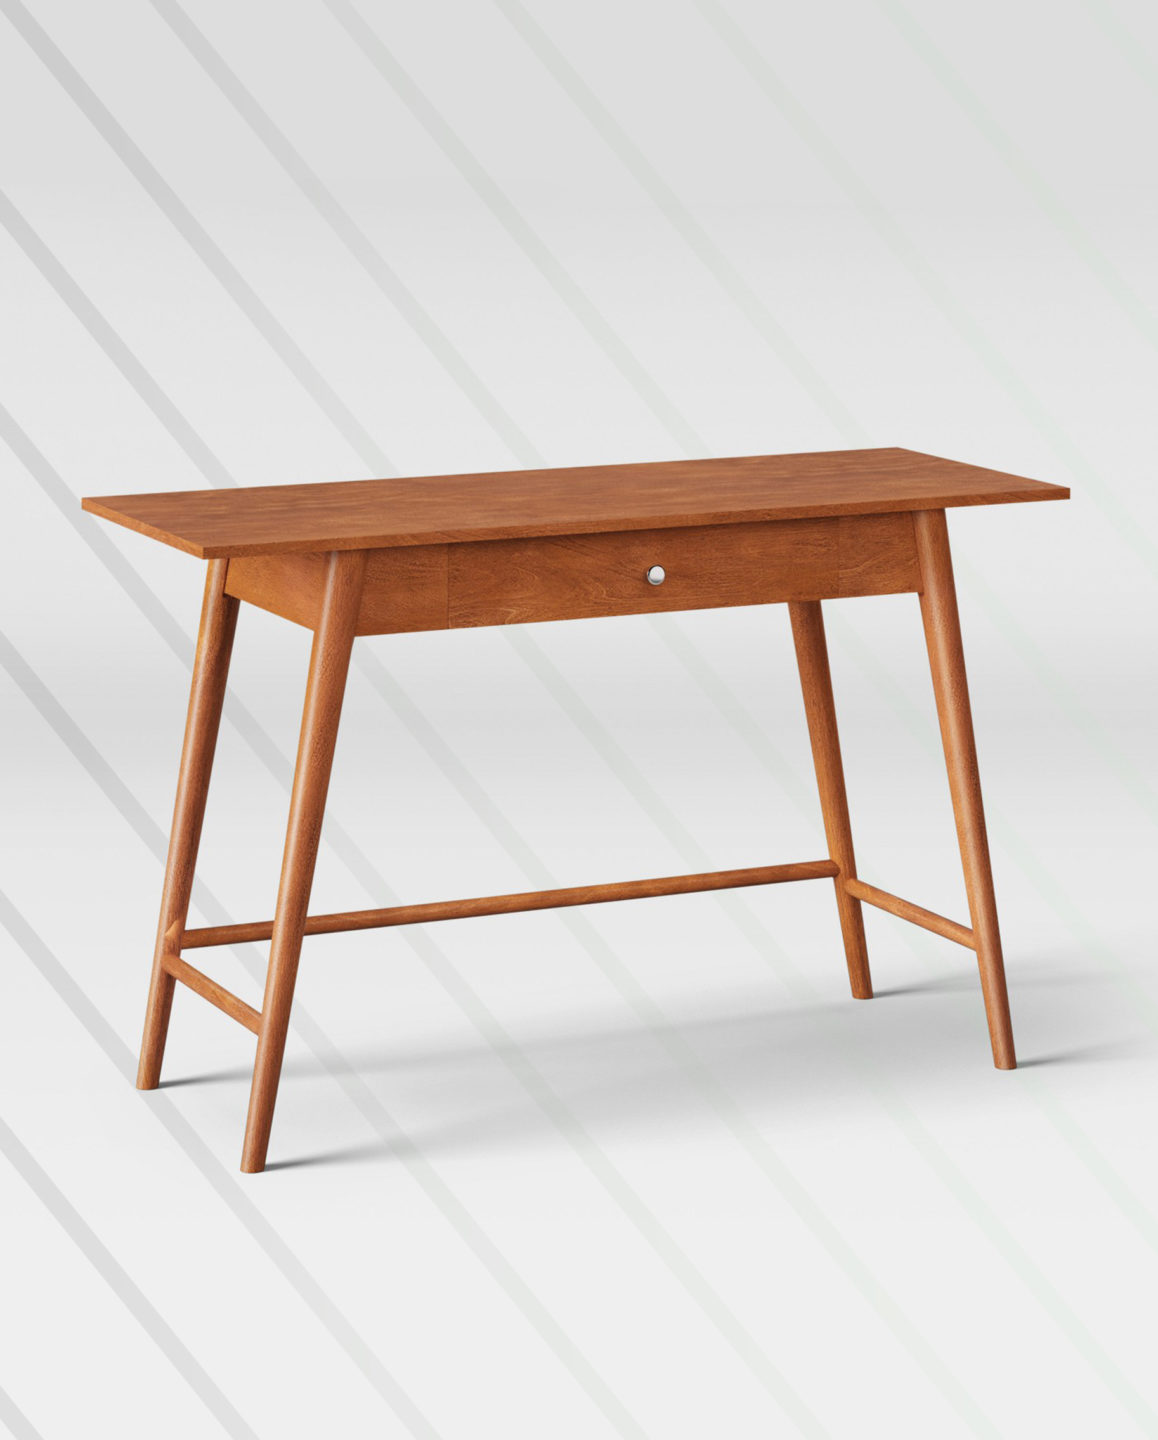 Mid Century Modern Console Table: A Mid Century Modern Moment